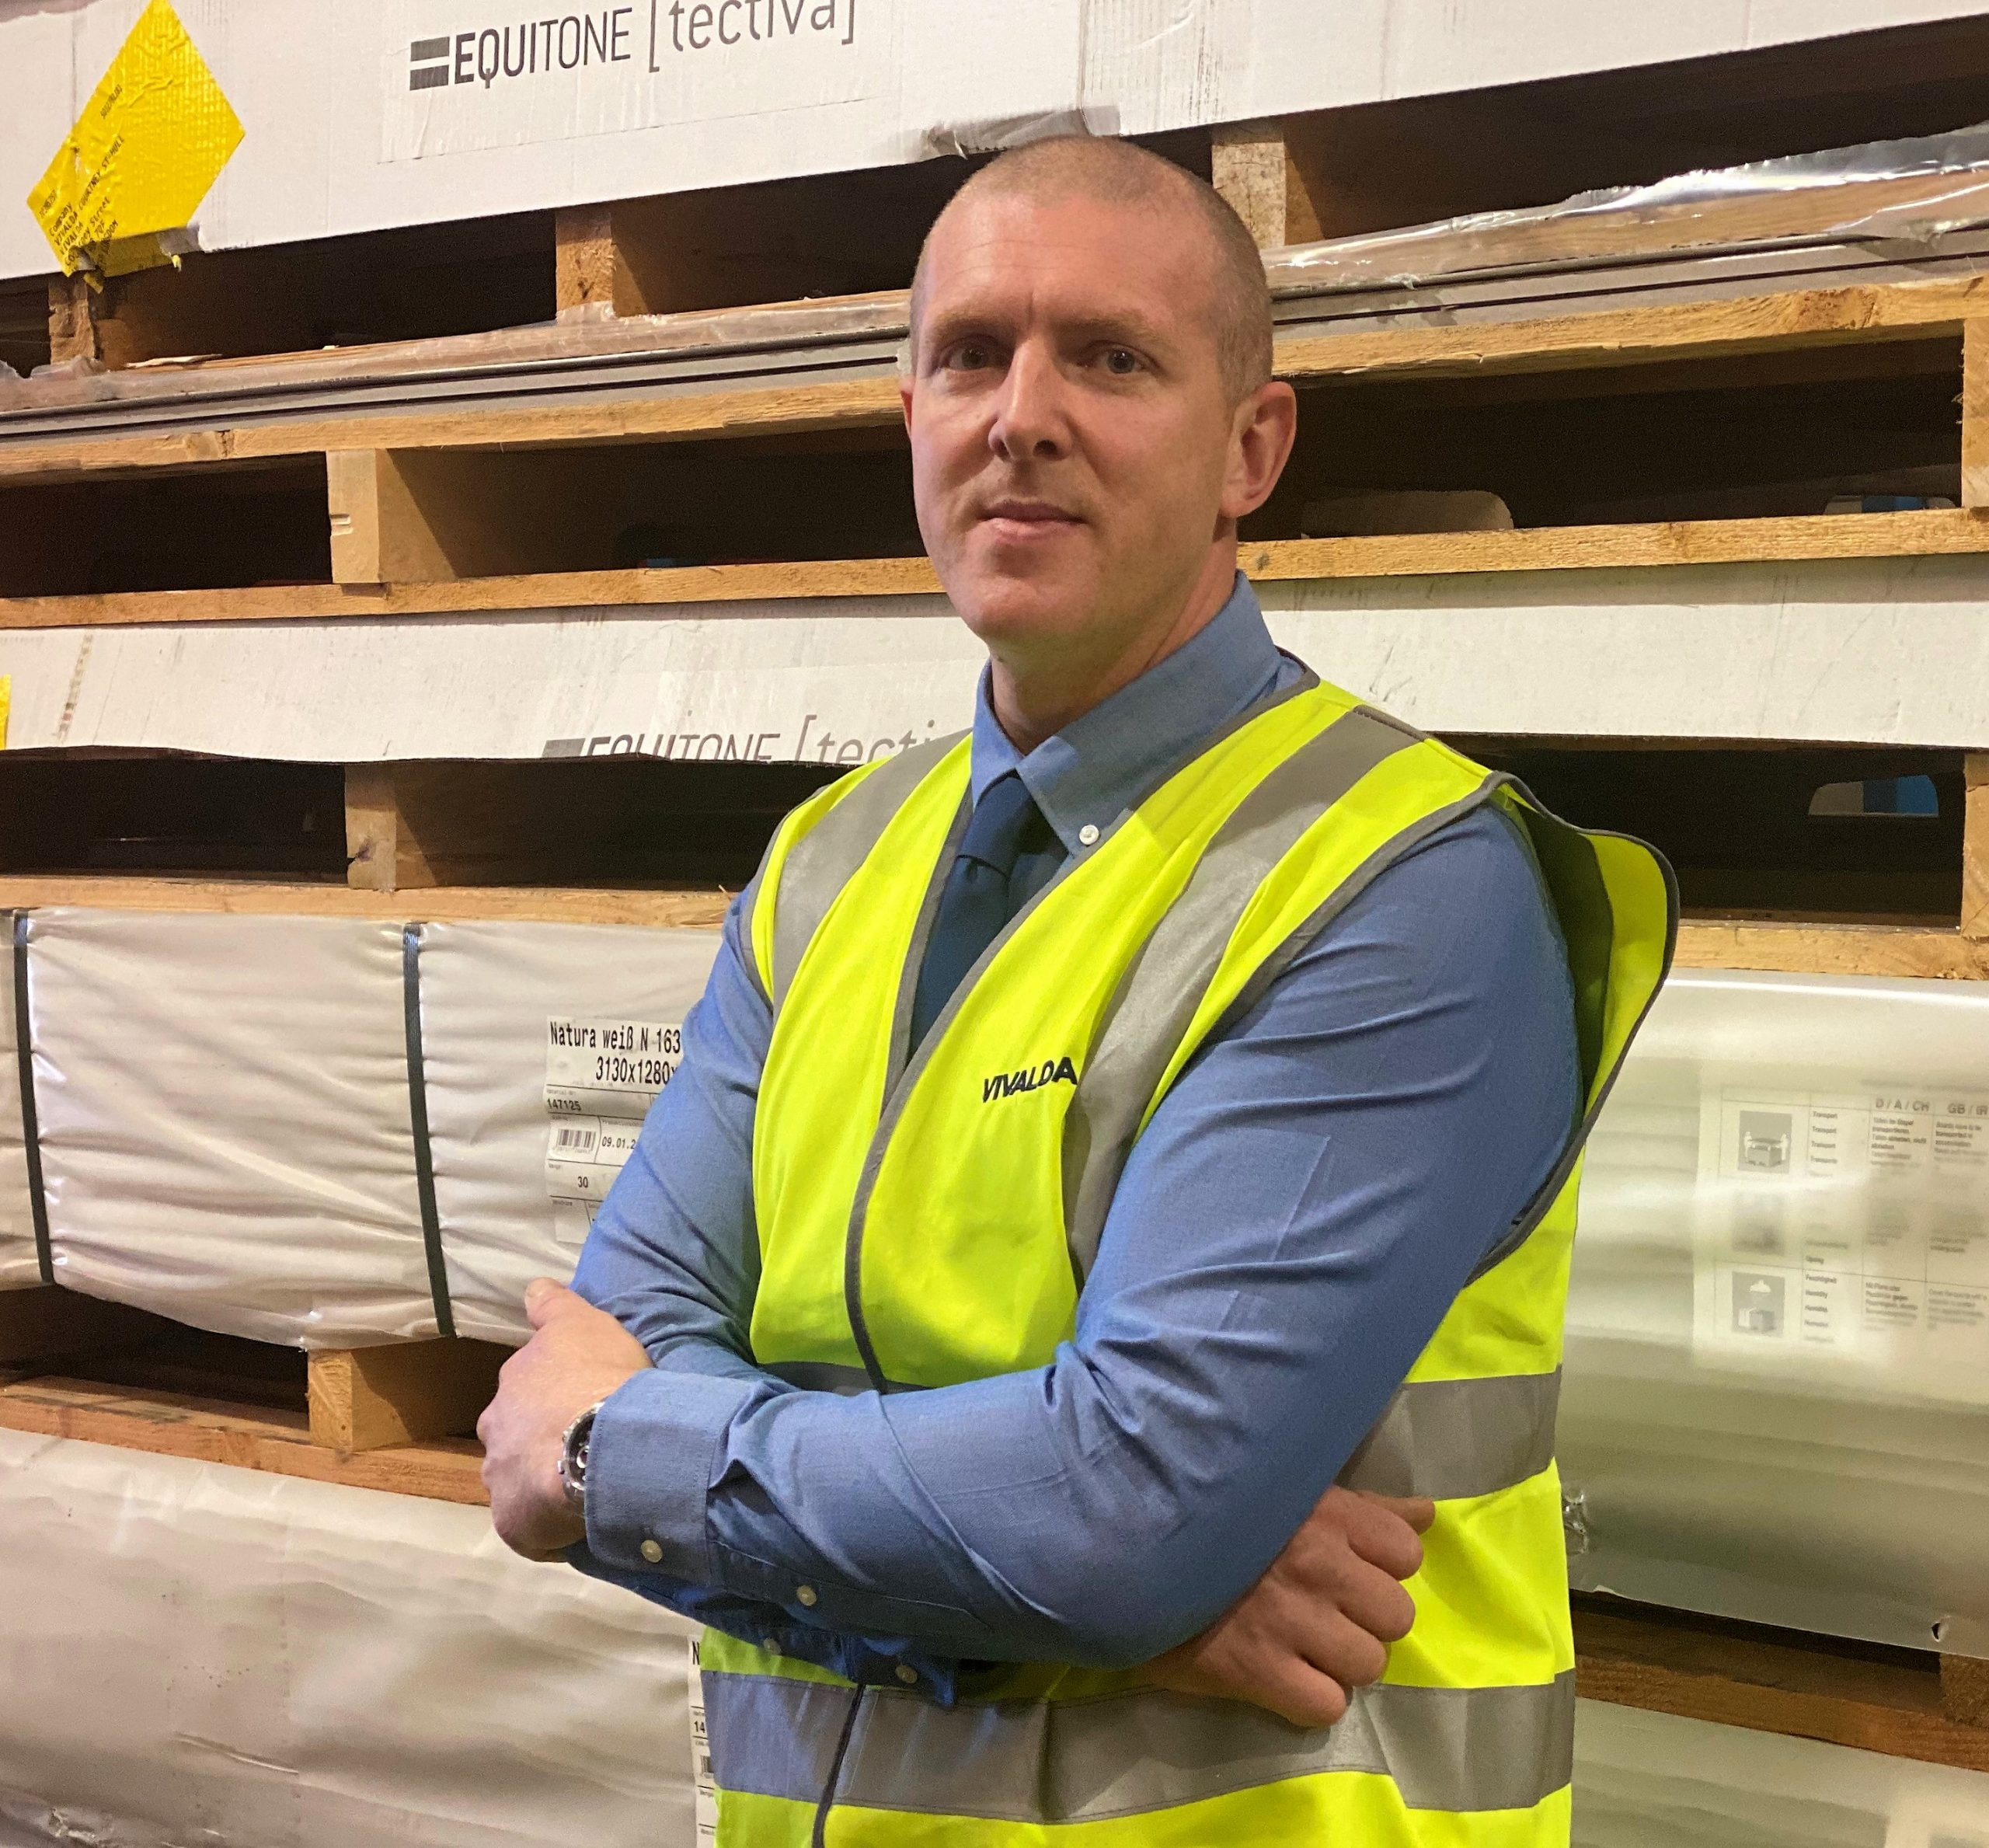 Outsourcing cuts cladding fabrication costs by 50%